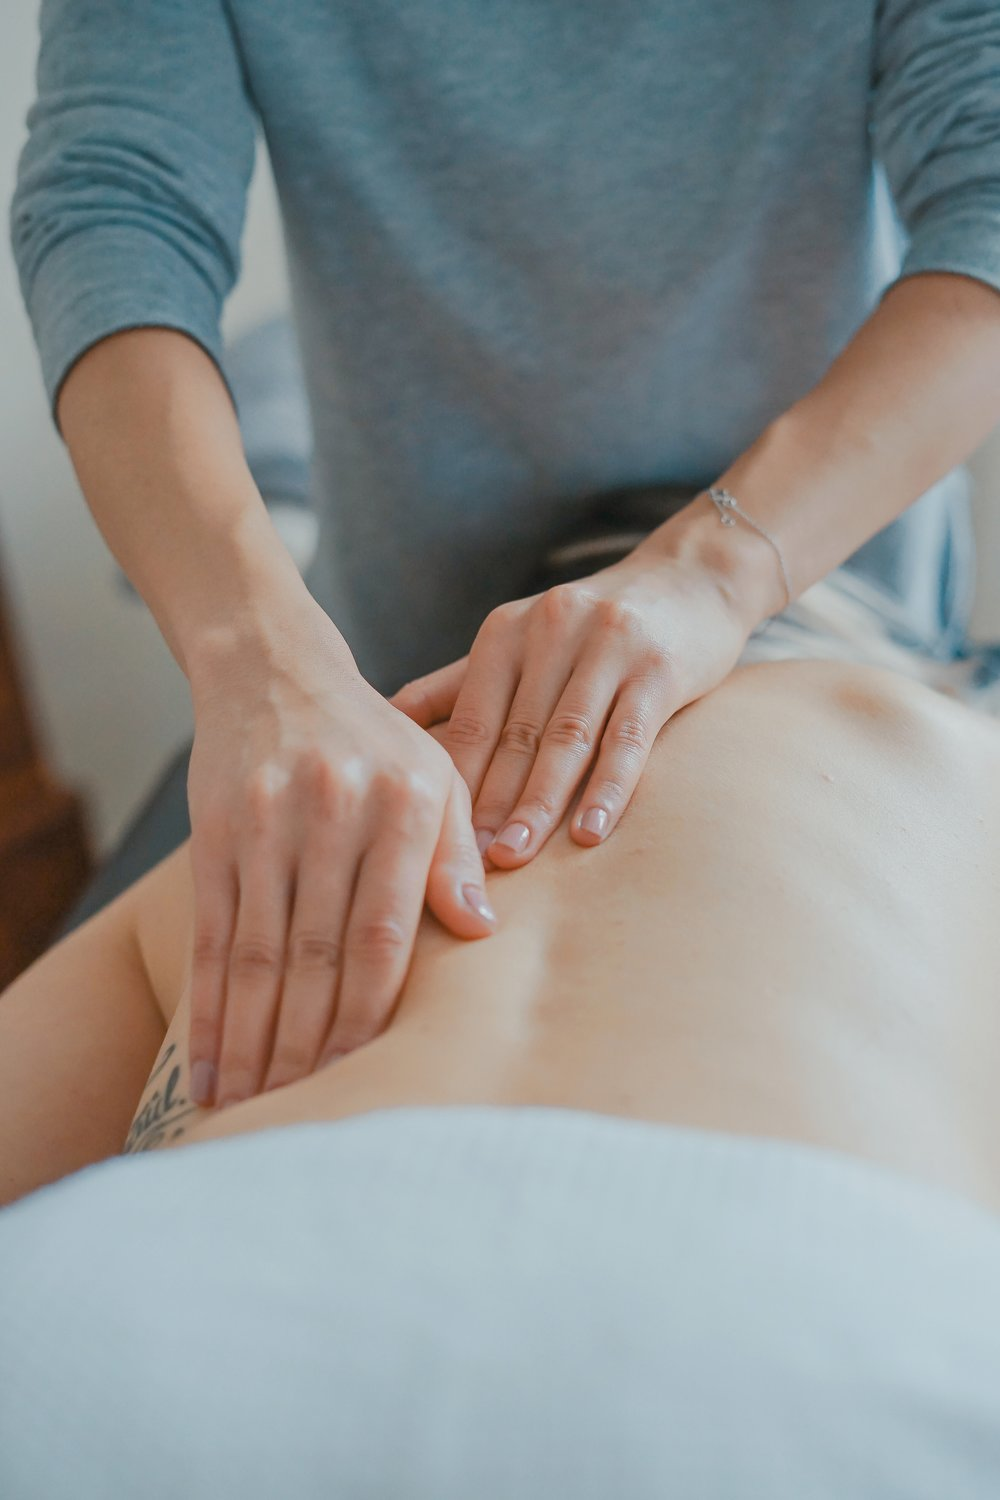 pelvic physiotherapy services waterloo region and kitchener